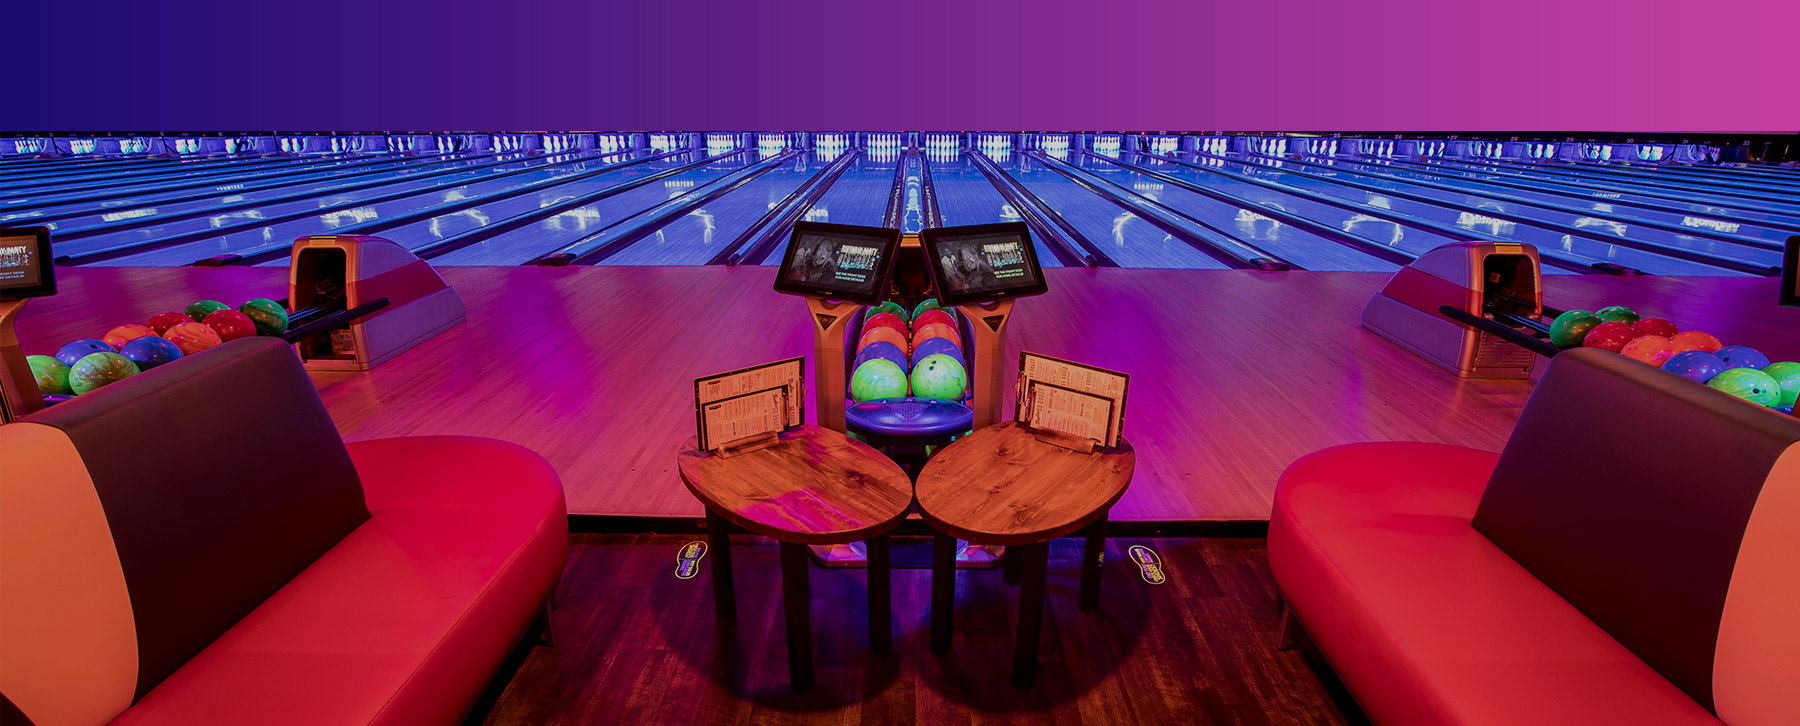 bowling lanes and seats